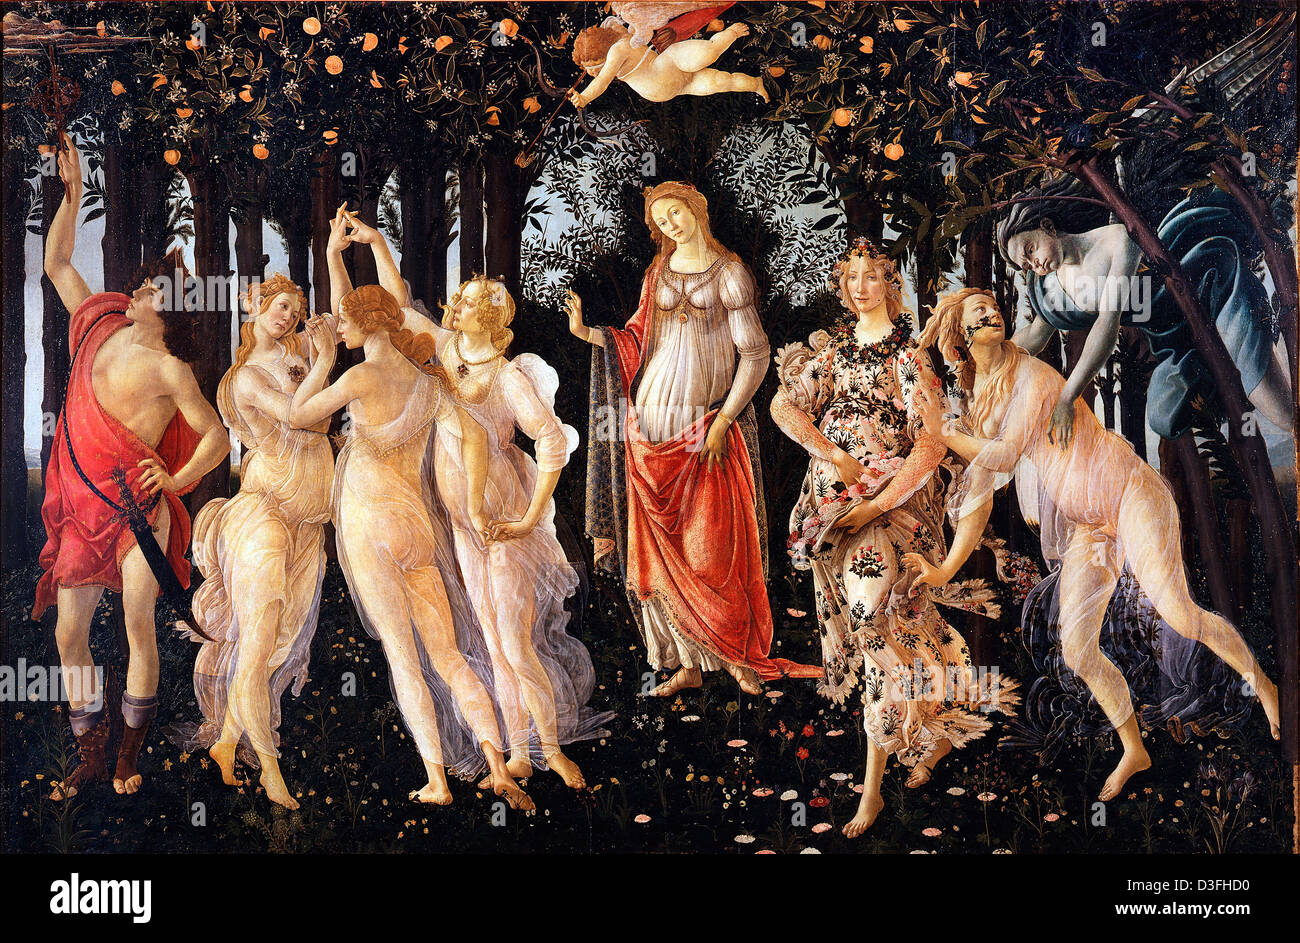 Sandro Botticelli, Spring (Primavera) 1482 Tempera on panel. Uffizi, Florence - Stock Image